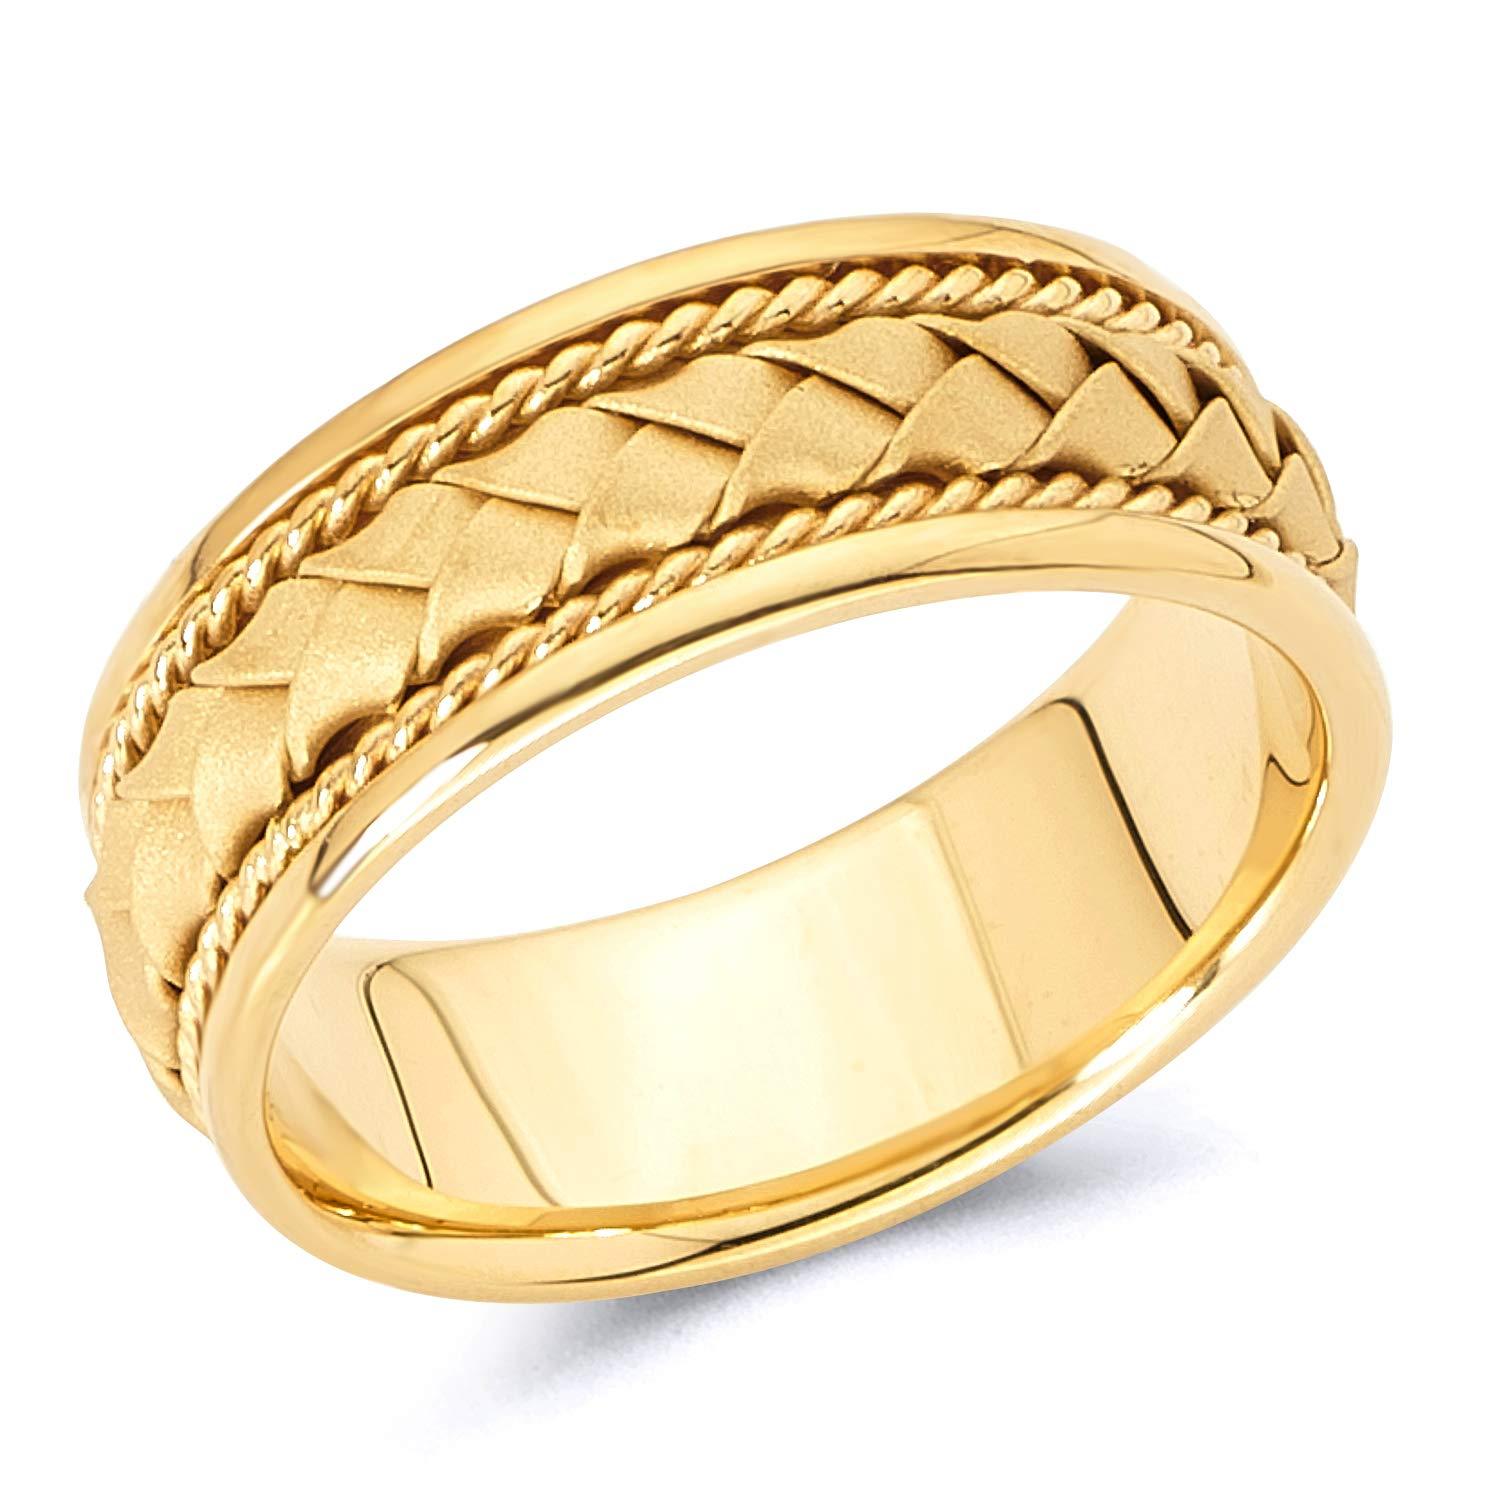 Wellingsale 14k Yellow Gold Polished Satin 8MM Handmade Braided Rope Comfort Fit Wedding Band Ring - size 10.5